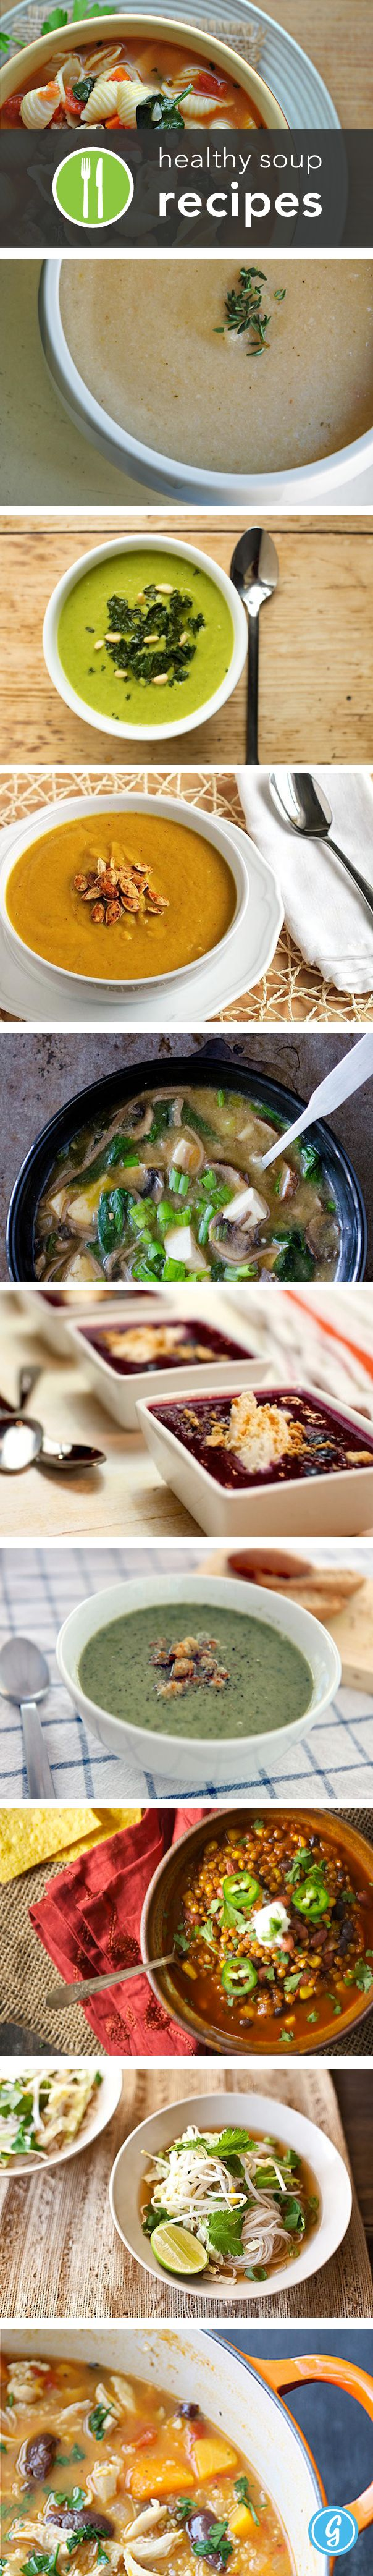 Delicious #healthy soup recipes - perfect for this cold winter! via @Greatist #healthyeating #recipe